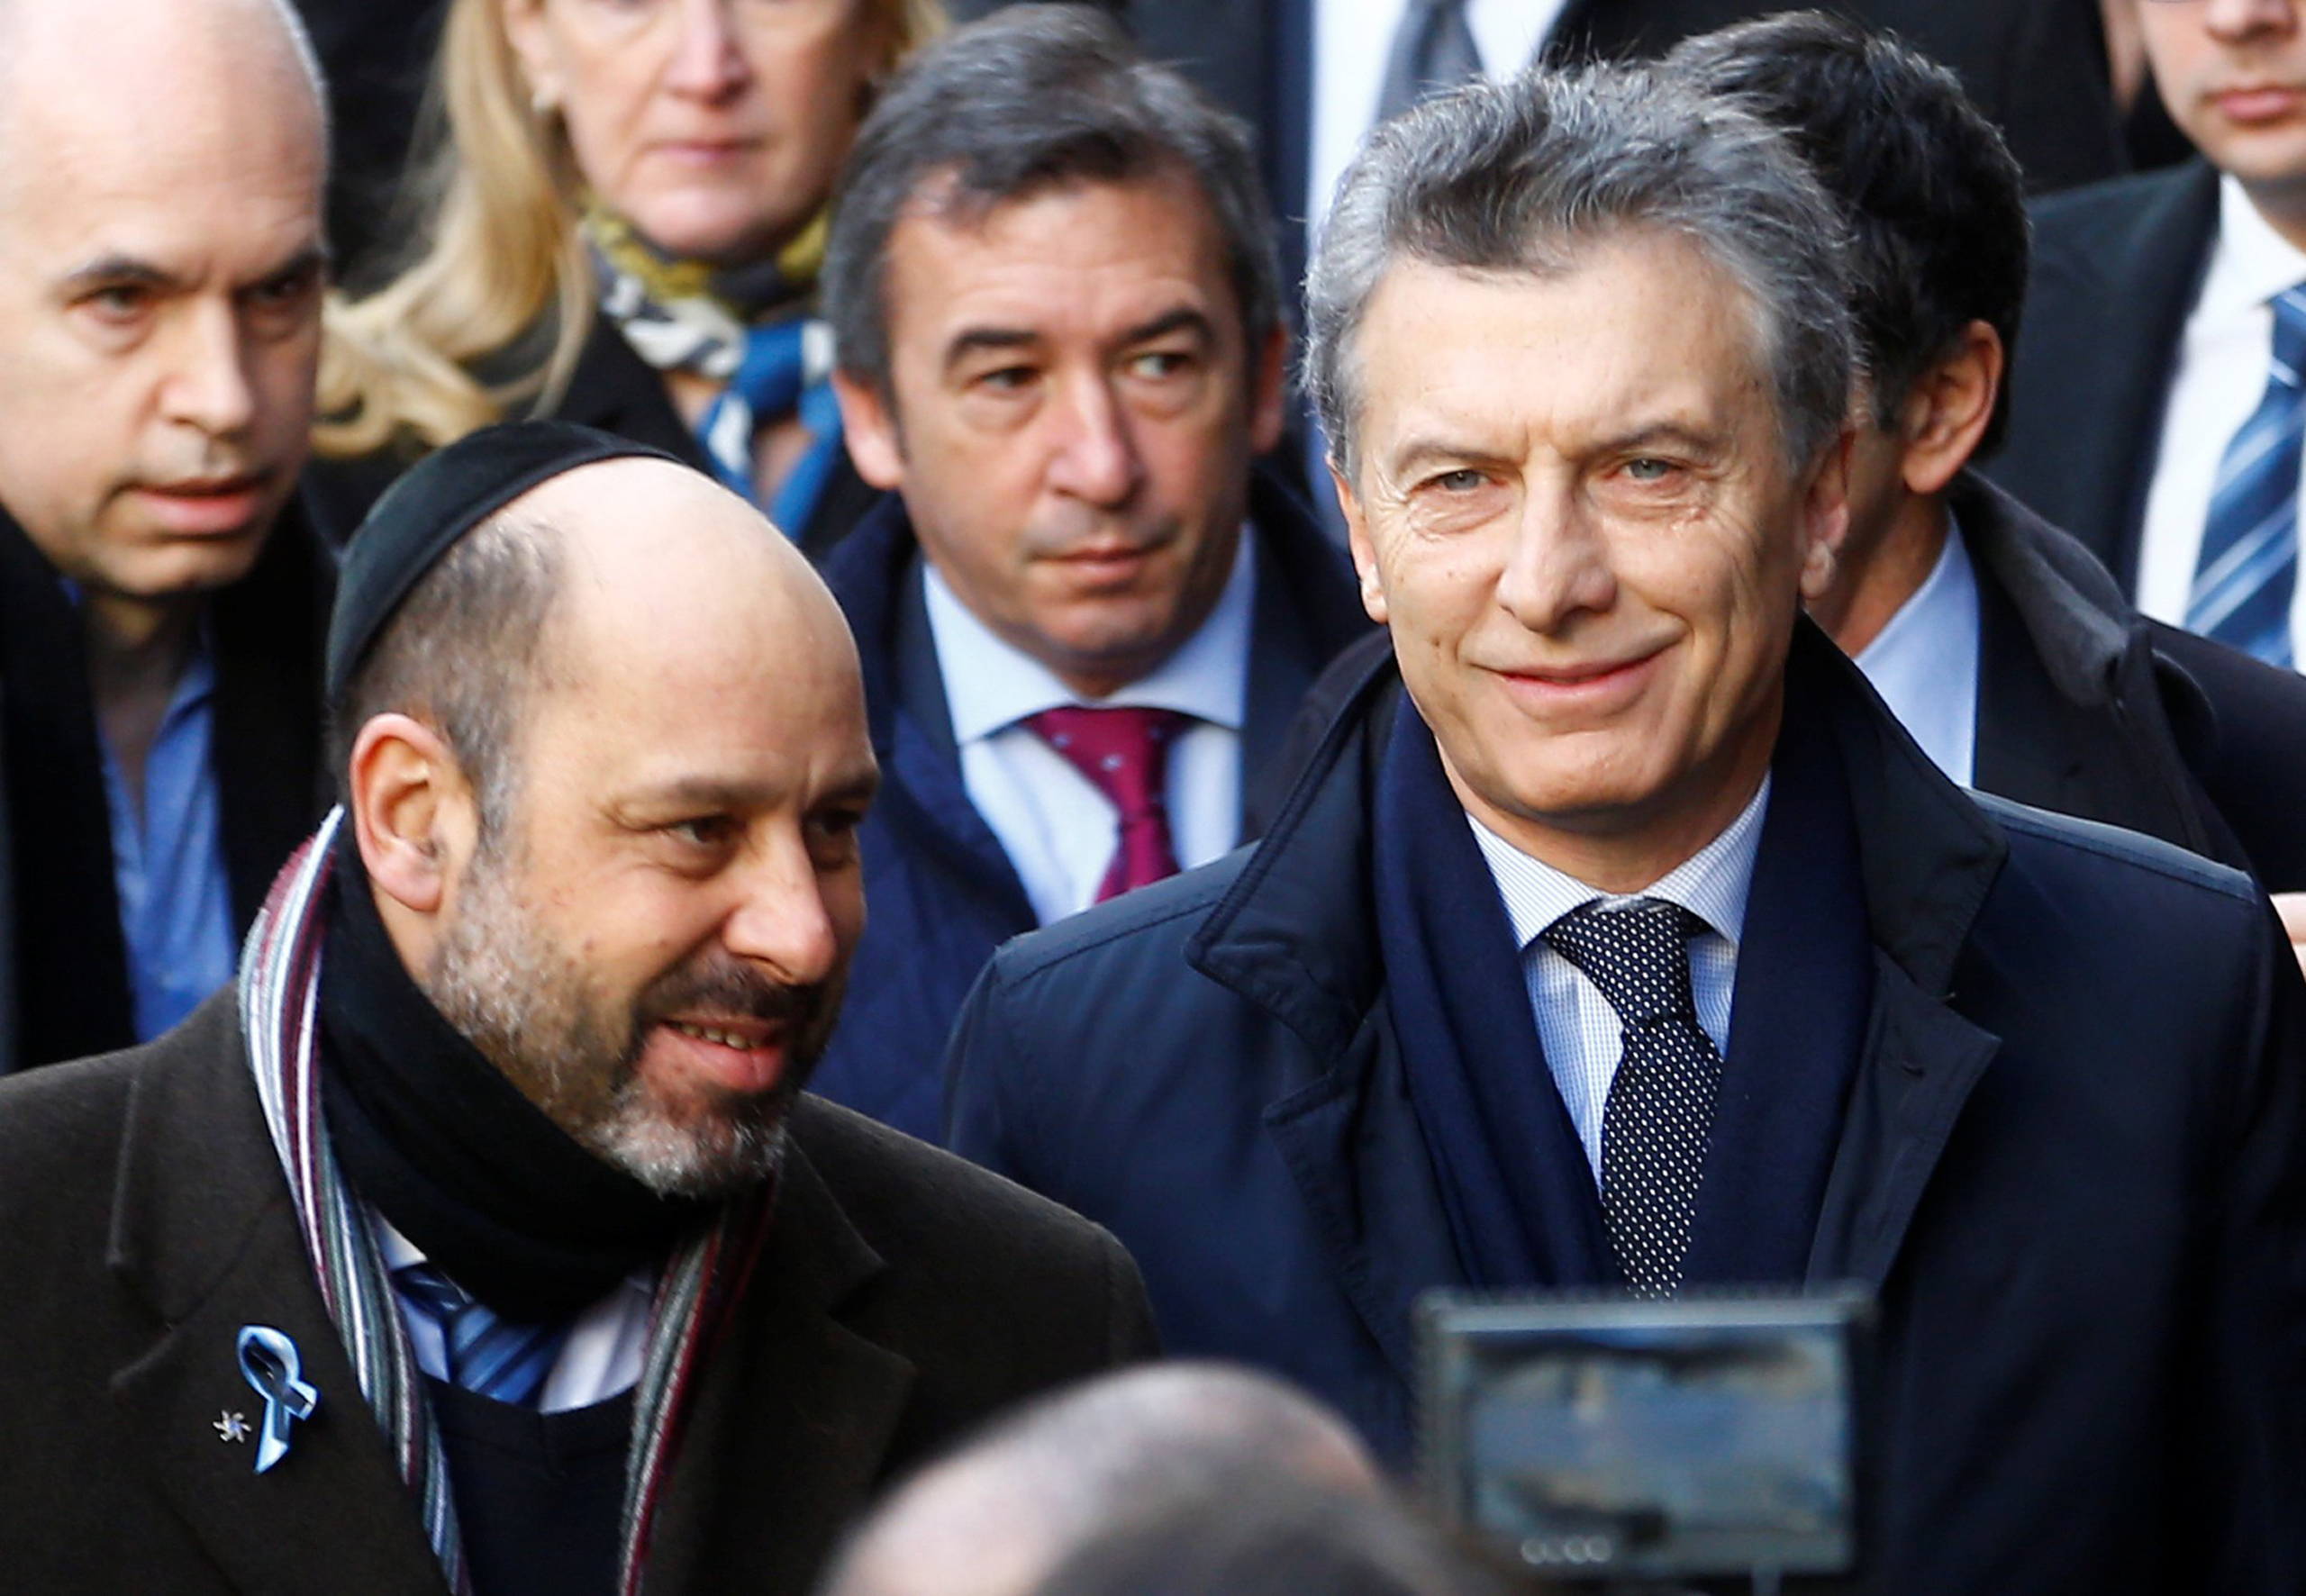 Argentine President Mauricio Macri accompanied by AMIA's Vice President Ralph Thomas Saieg arrives to attend a ceremony marking the 22nd anniversary of the 1994 attack that left 85 dead at the AMIA Jewish center in Buenos Aires, on July 18, 2016.